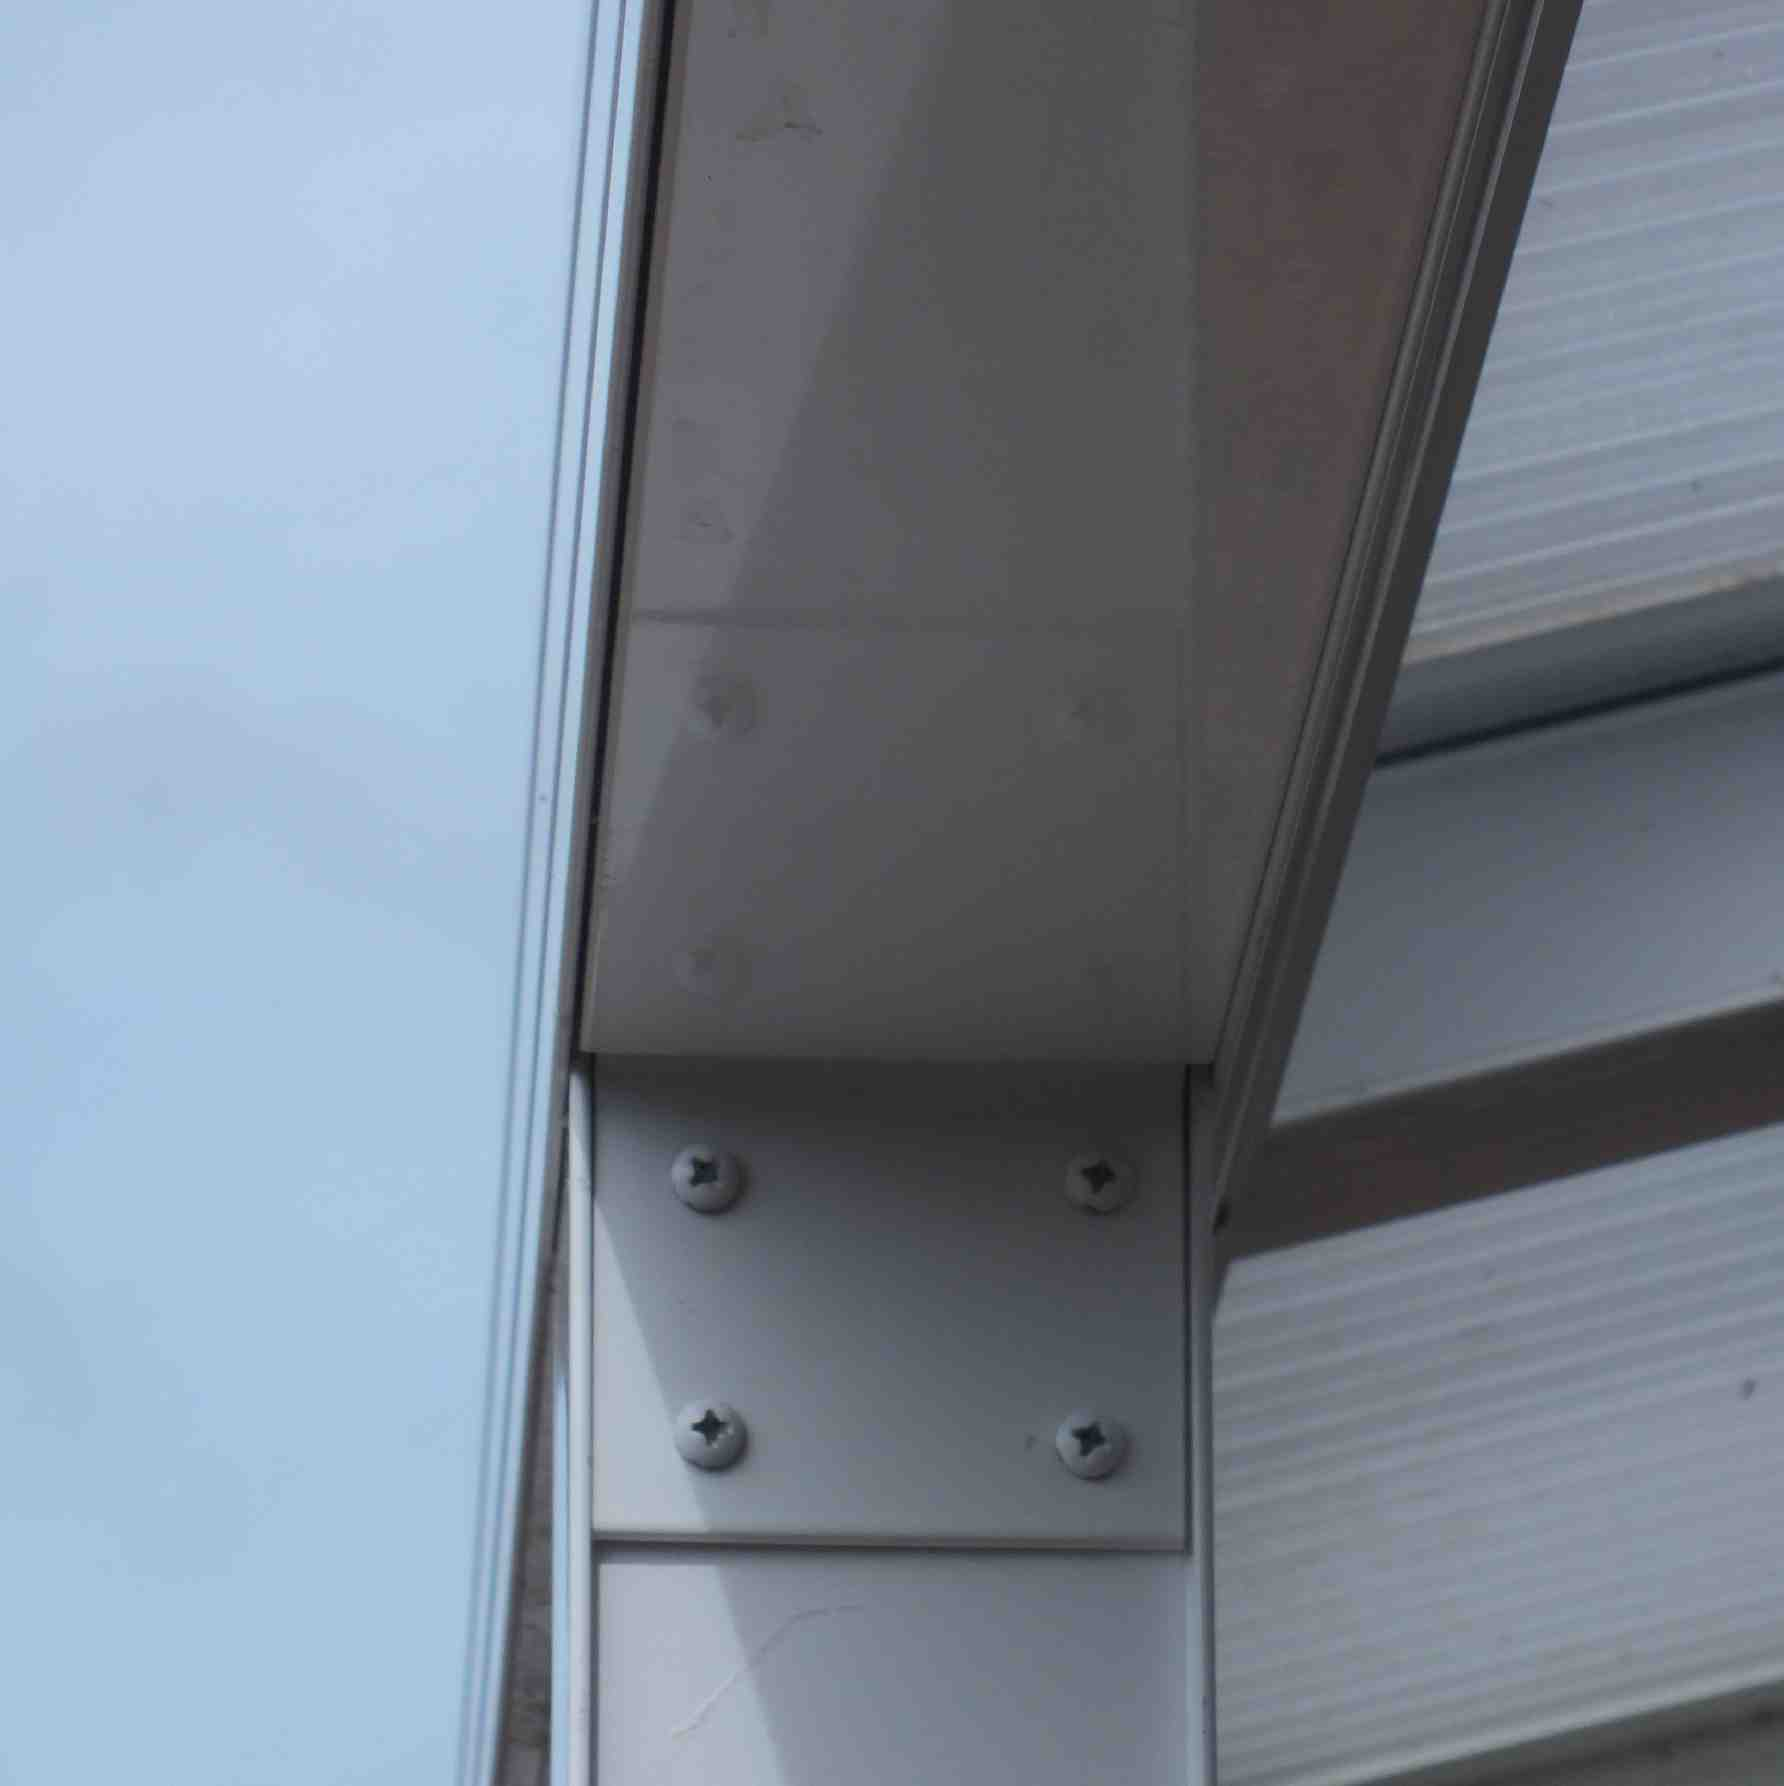 Affordable Omega Verandah with 6mm Glass Clear Plate Polycarbonate Glazing - 4.9m (W) x 3.0m (P), (3) Supporting Posts